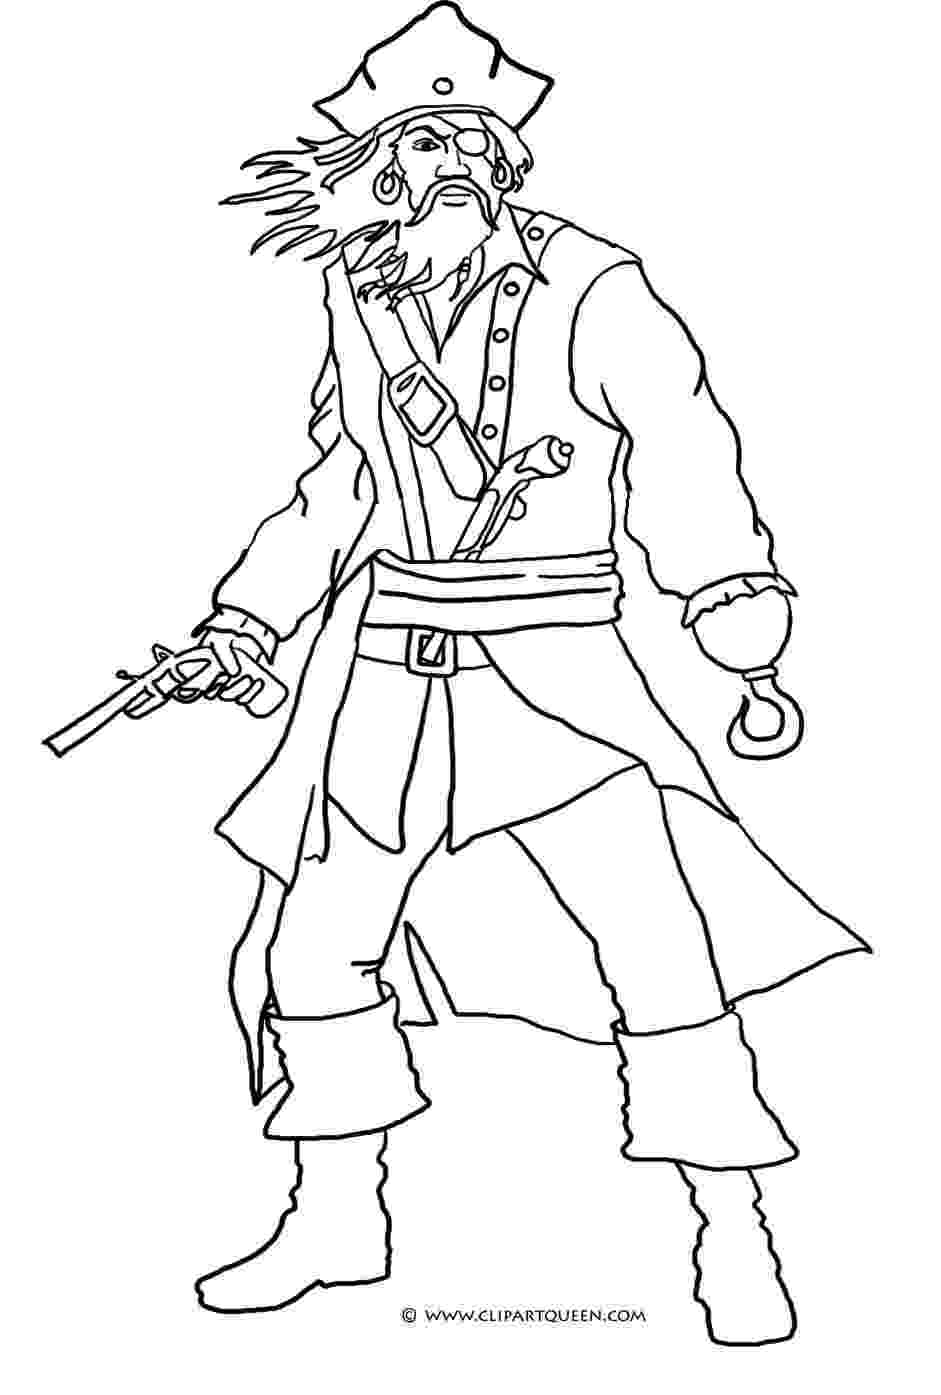 pirate coloring free printable pirate coloring pages for kids coloring pirate 1 2